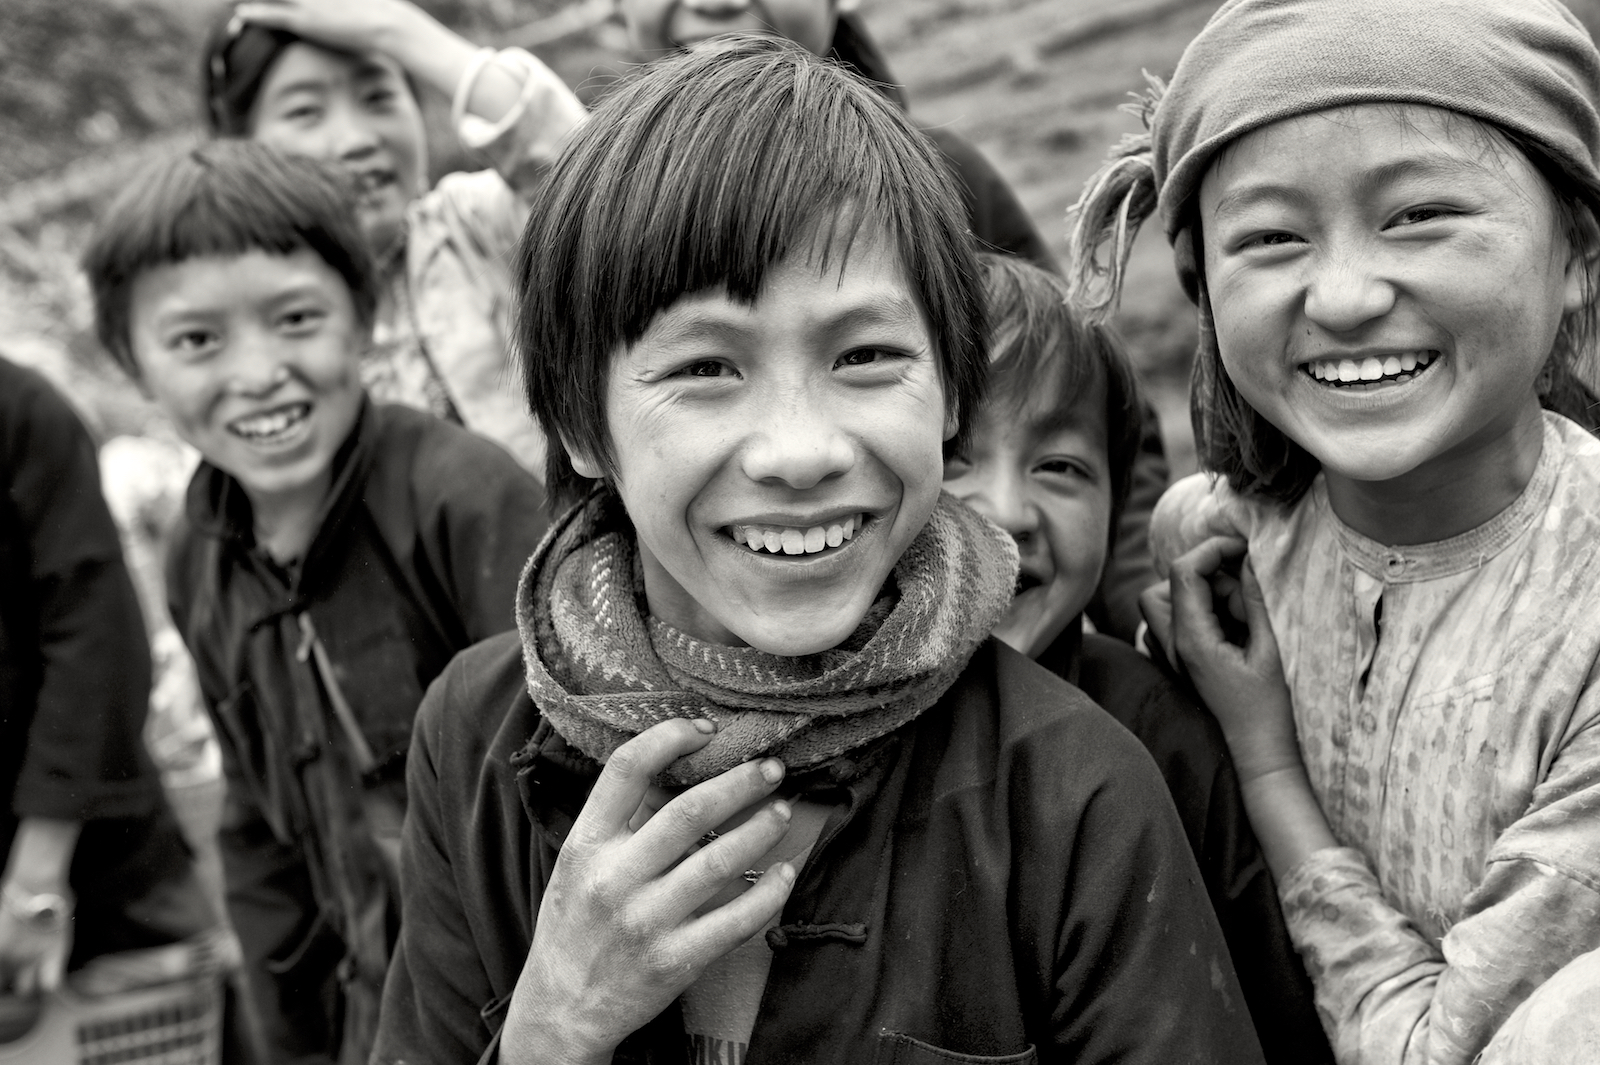 Children in northeastern Vietnam.  Image by New Orleans based travel photographer, Marc Pagani - marcpagani.com